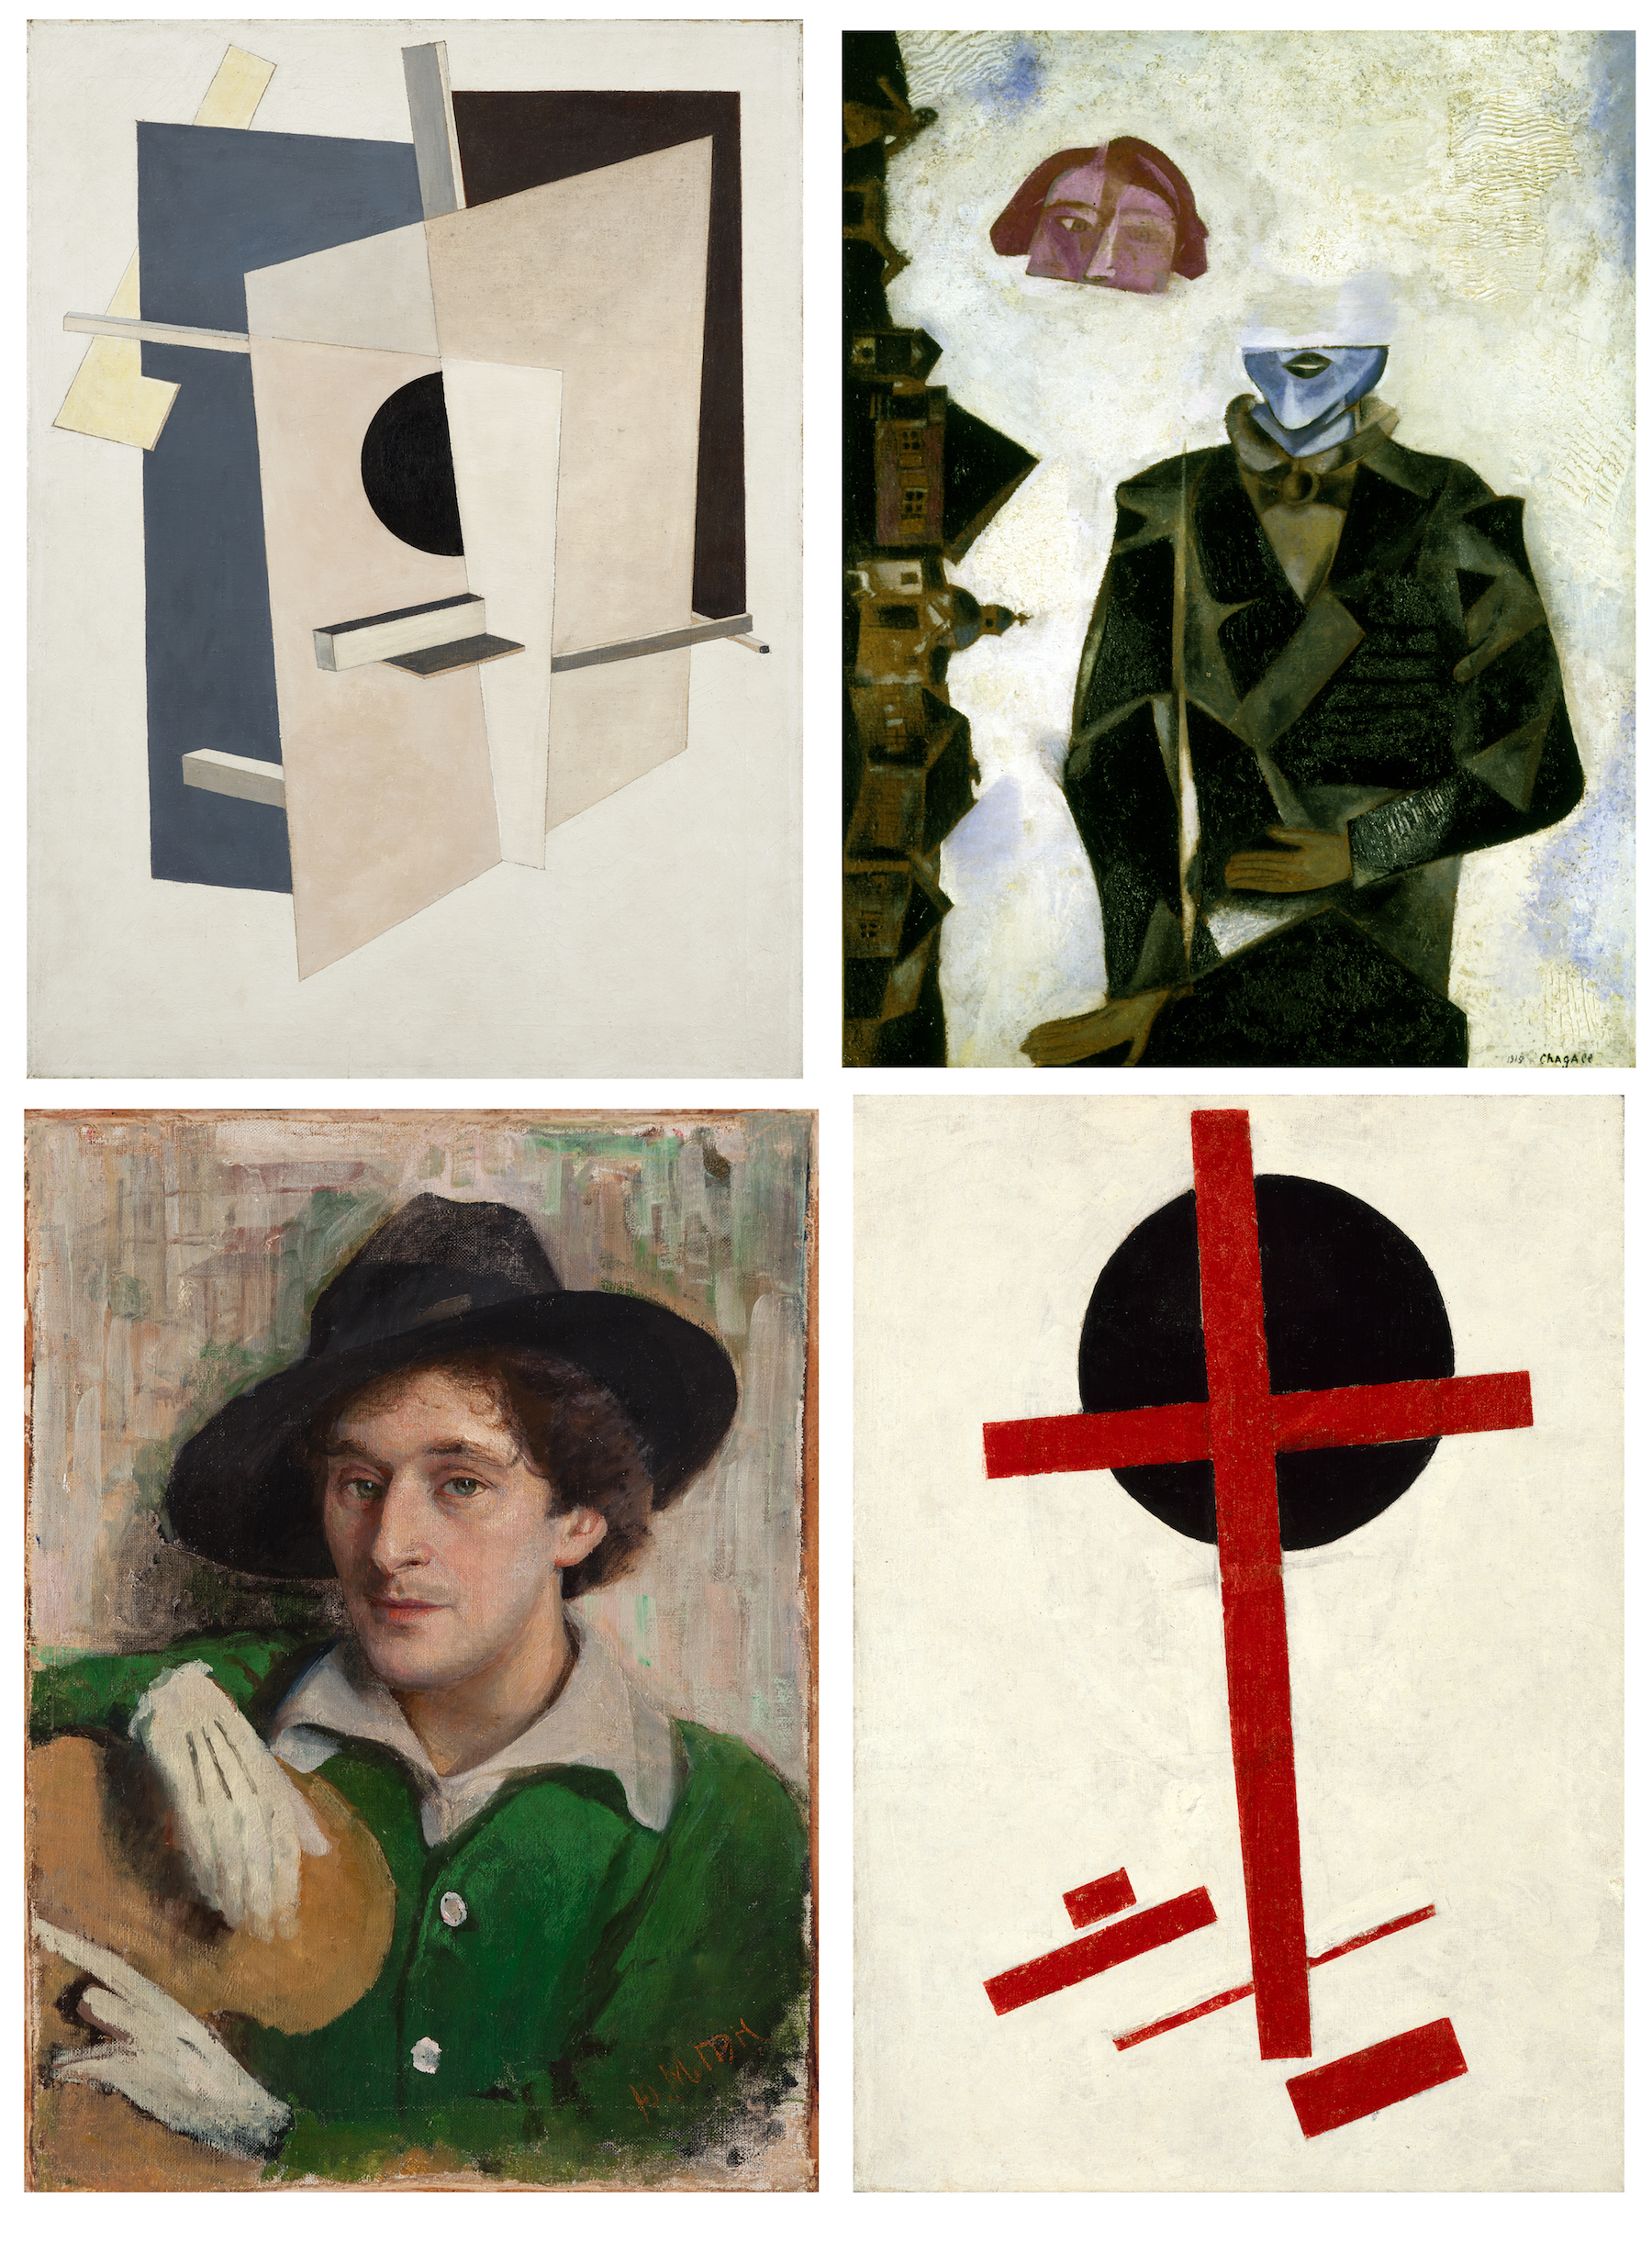 Top, from left: El Lissitzky, Proun 6, 1919-20, oil on canvas. Kulturstiftung Sachsen-Anhalt, Kunstmuseum Moritzburg, Halle (Saale), Germany. Photograph by Punctum/Bertram Kober|Marc Chagall, Anywhere out of the World, 1915–19, oil on cardboard mounted on canvas. The Museum of Modern Art, Gunma, Japan, extended Loan from the Bureau of Public Utilities, Gunma Prefectural Government. Artwork © Artists Rights Society (ARS), New York / ADAGP, Paris |Bottom, from left: Yuri (Yehuda) Pen, Portrait of Marc Chagall, 1914, oil on canvas mounted on cardboard. Ministry of Culture of the Republic of Belarus. National Art Museum of the Republic of Belarus, Minsk|Kazimir Malevich, Mystic Suprematism (Red Cross on Black Circle), 1920-22, oil on canvas.  Stedelijk Museum Collection, Amsterdam. Ownership recognized by agreement with the estate of Kazimir Malevich, 2008